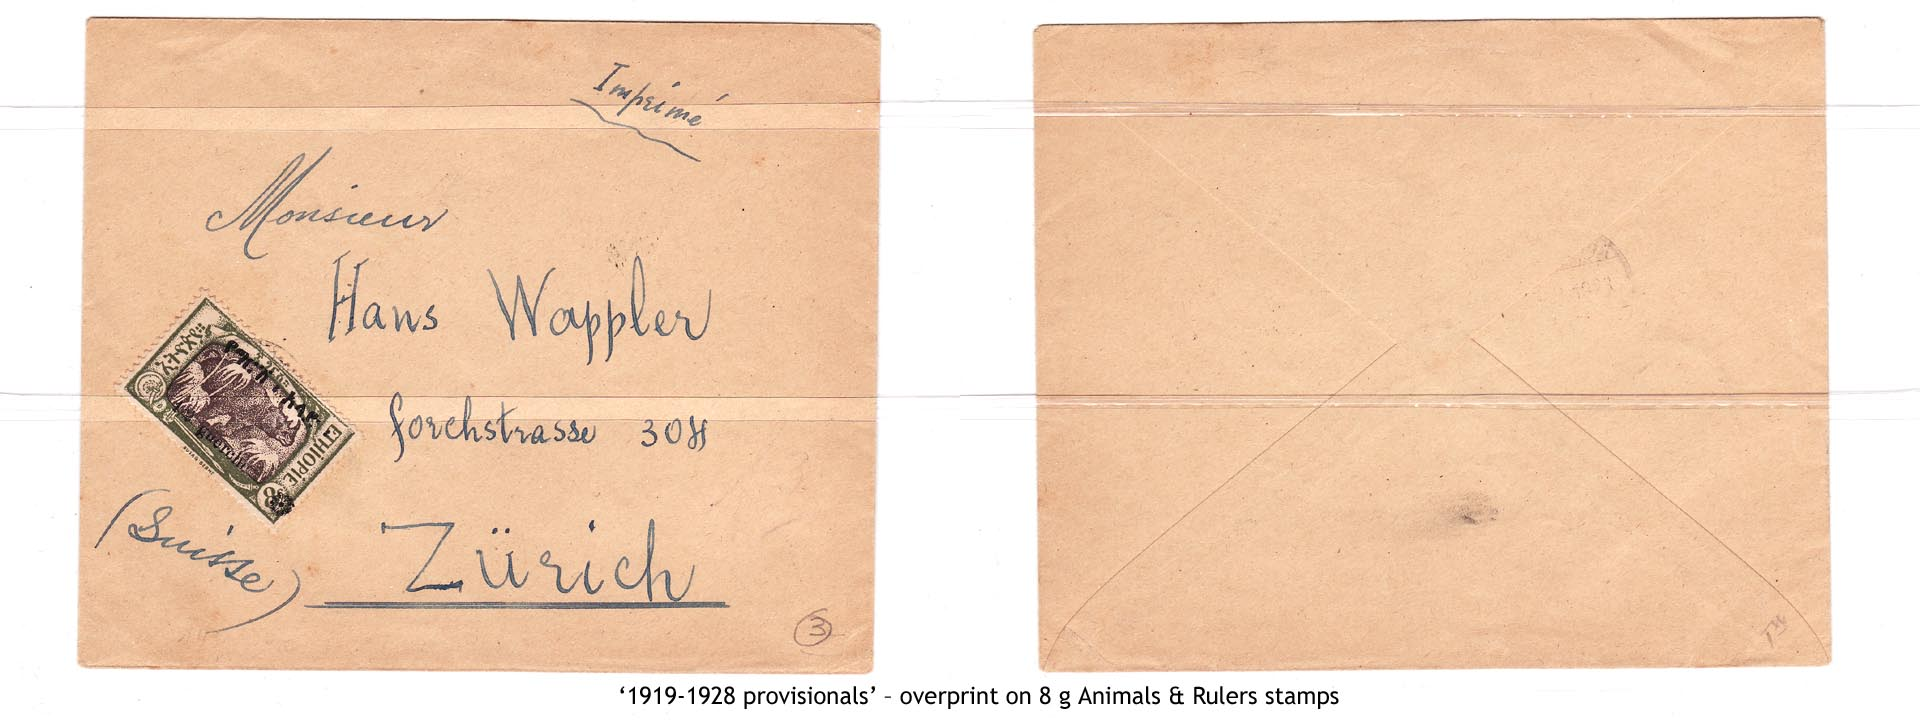 1919-1928 provisionals' – overprint on 8 g Animals & Rulers stamps